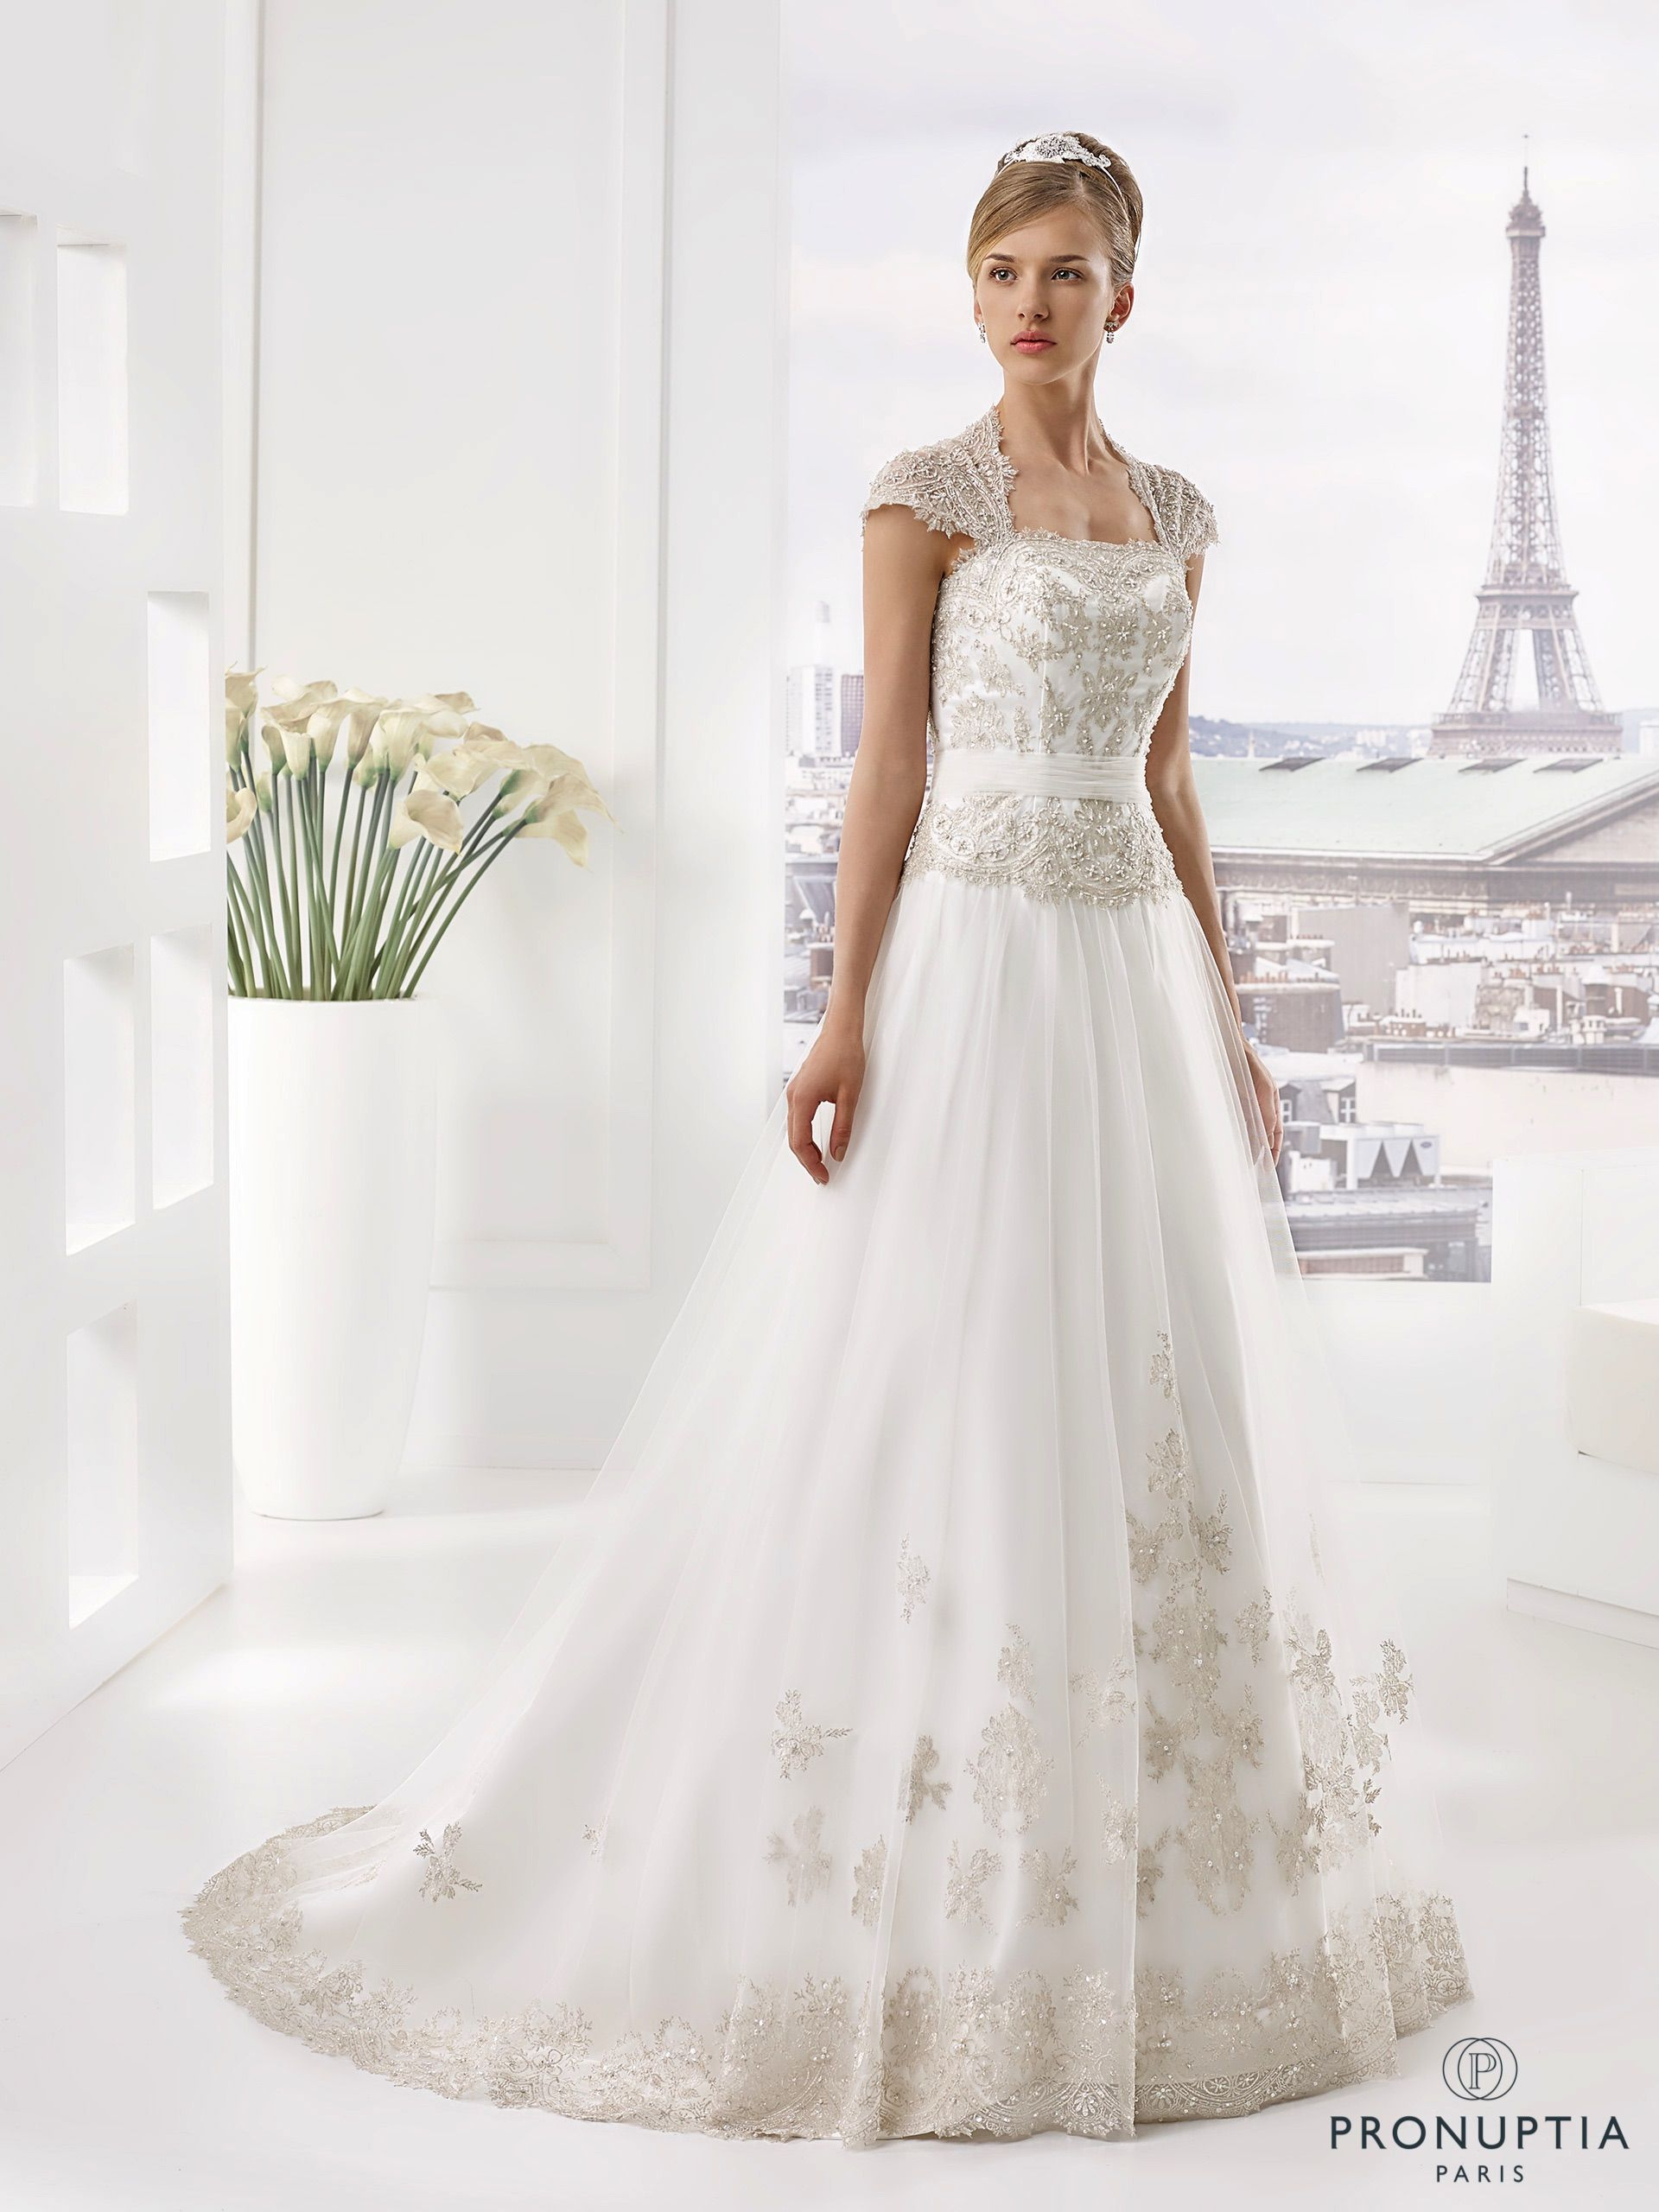 Acajou, collection de robes de mariée , Pronuptia